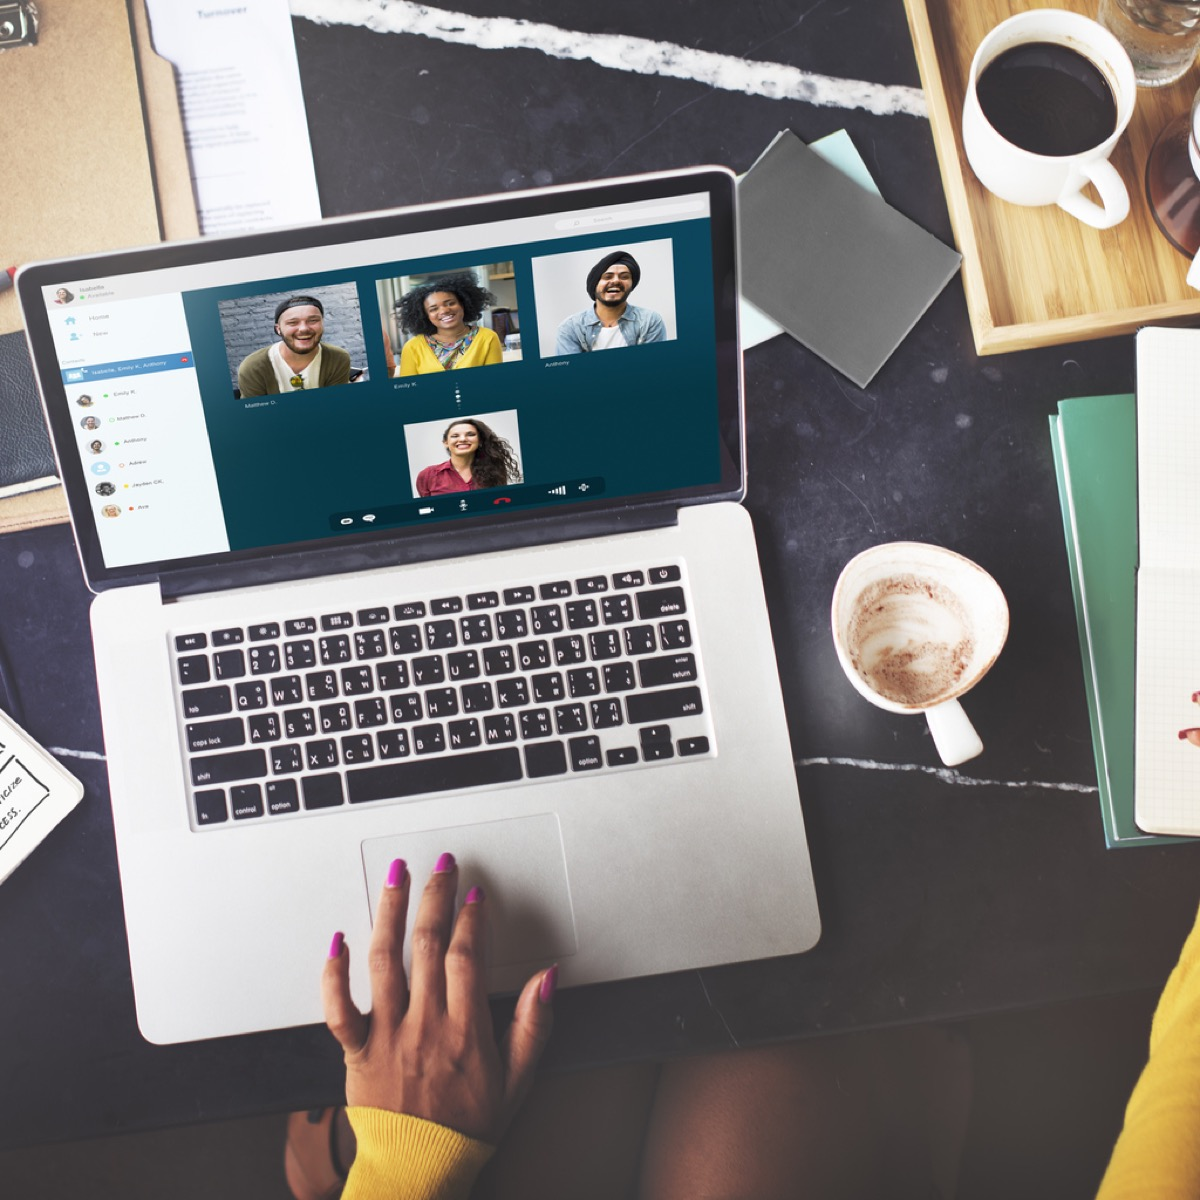 close up of woman's hand on computer while video chatting with four other people